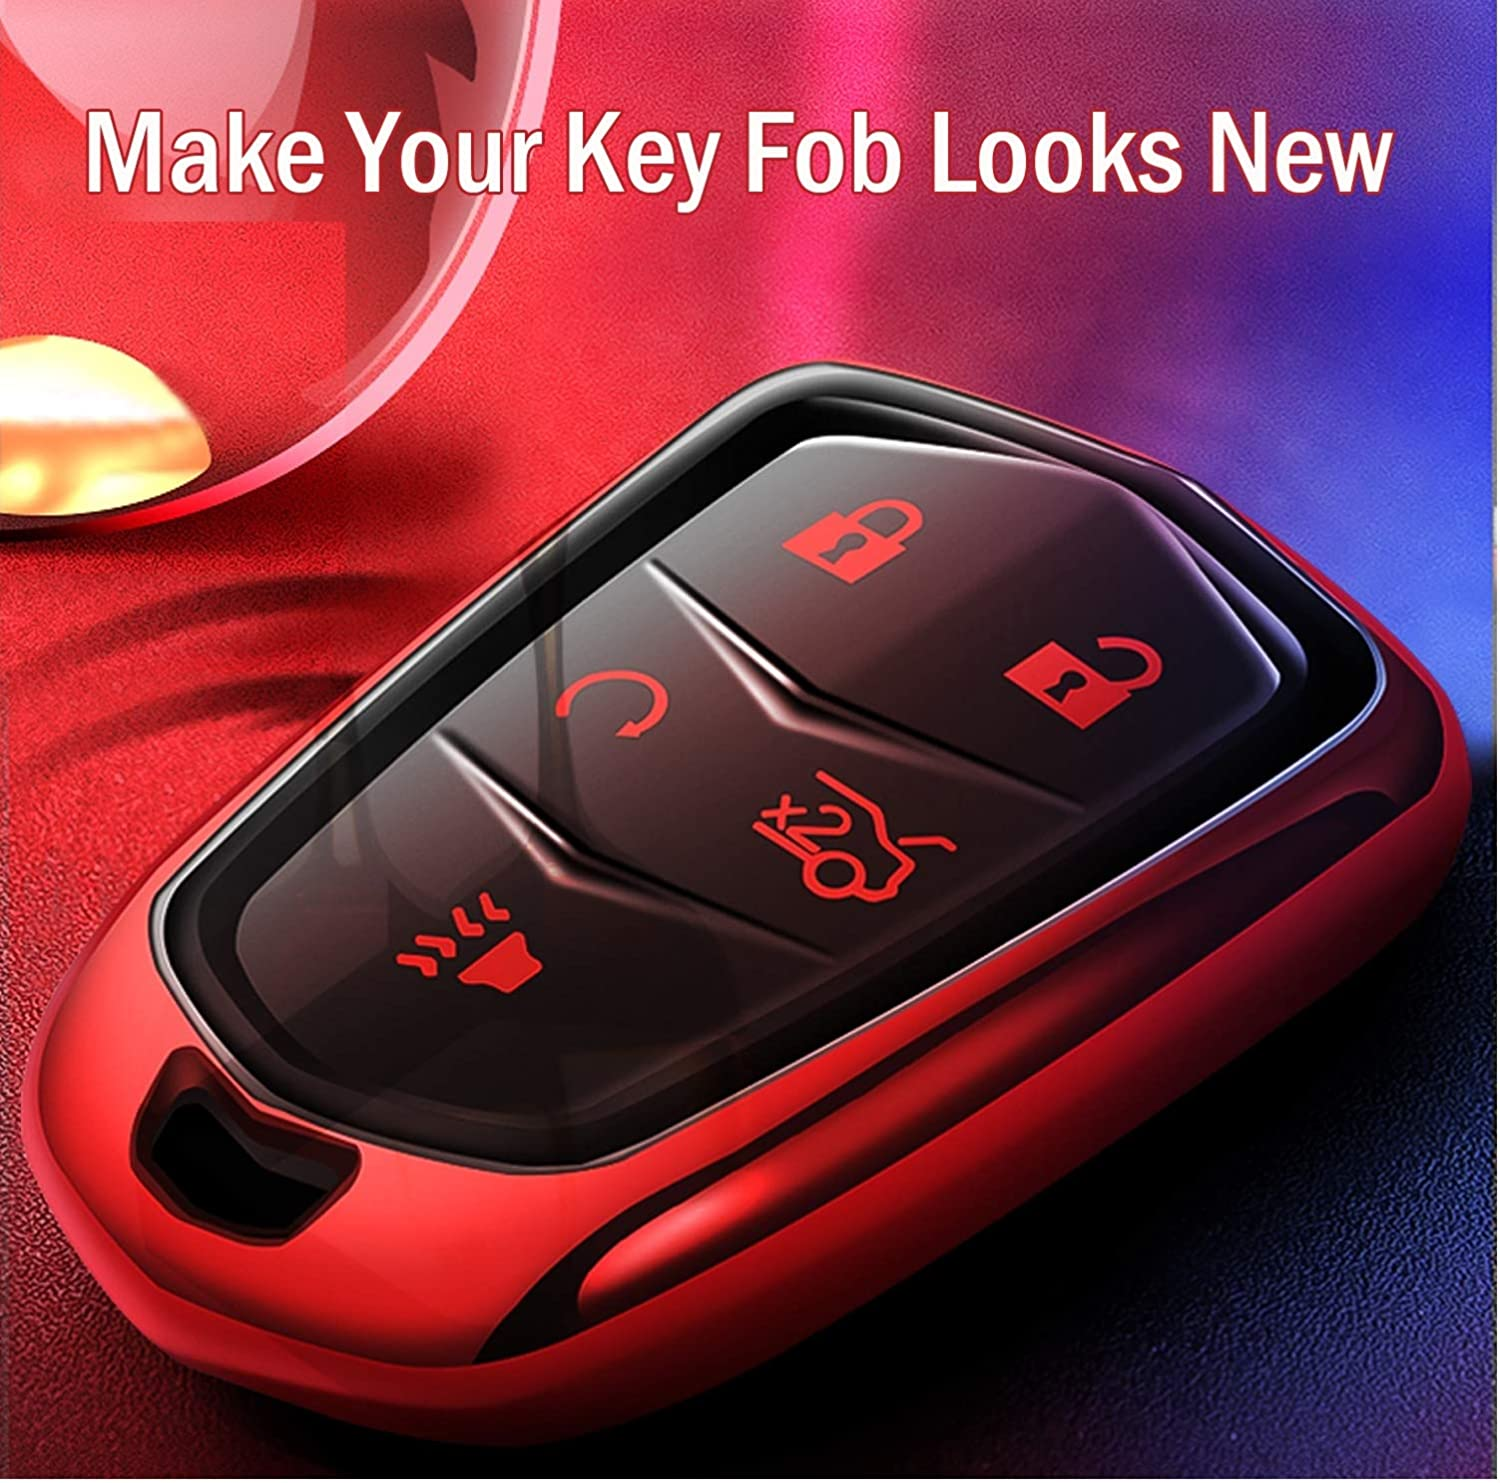 Key Fob Case for 2015-2019 Cadillac Escalade CTS SRX XT5 ATS STS CT6 5-Buttons Premium Soft TPU 360 Degree Full Protection Silver COMPONALL Key Fob Cover for Cadillac